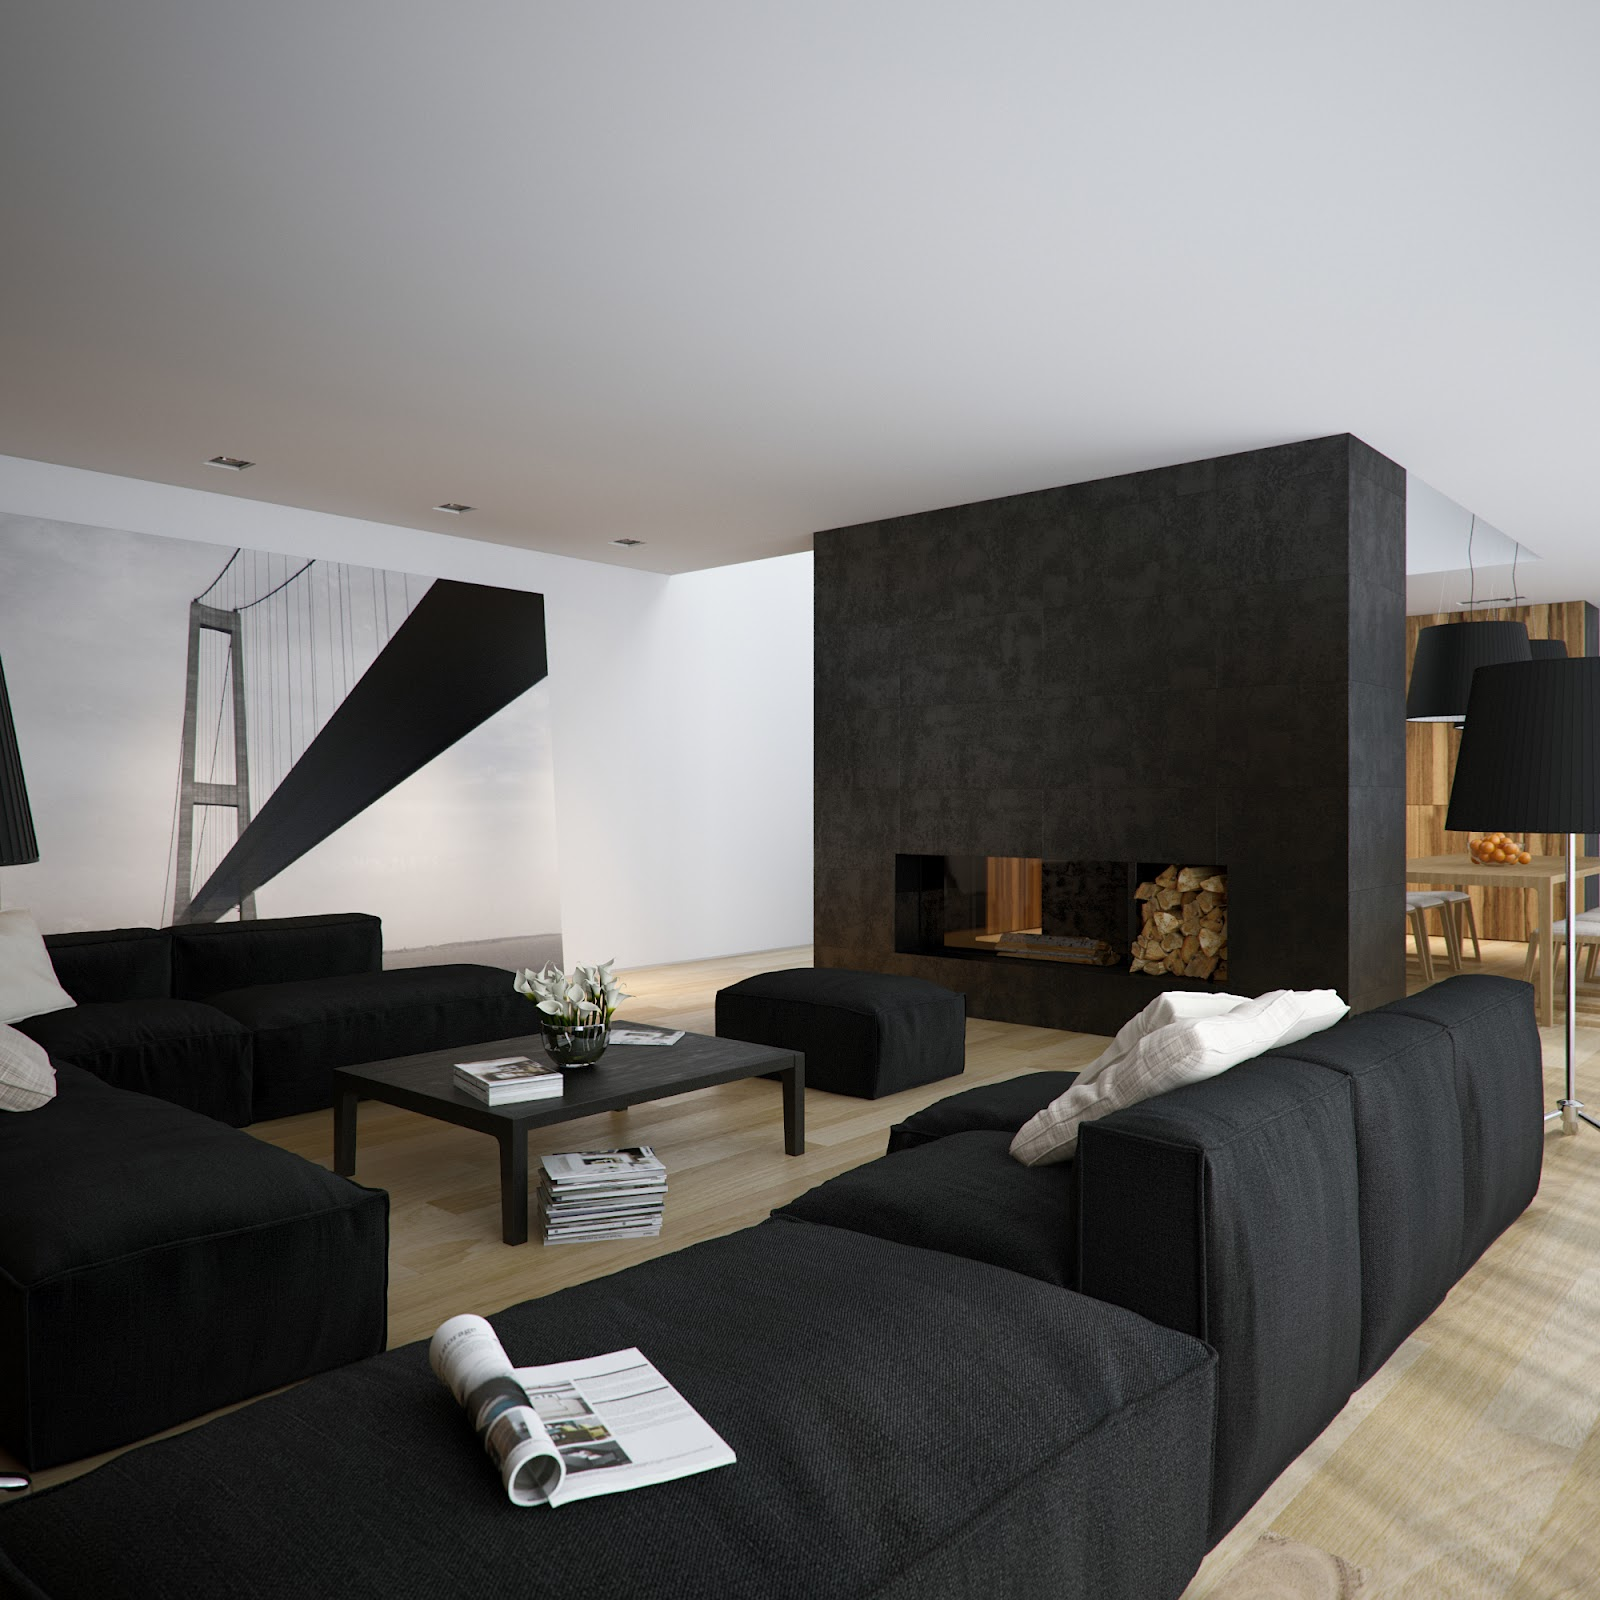 Bedroom paint designs black and white - Having Black And White Loft Area Is Cool Ideas You Only Need To Paint Entire House In White And Mix It Whit Black Accommodations